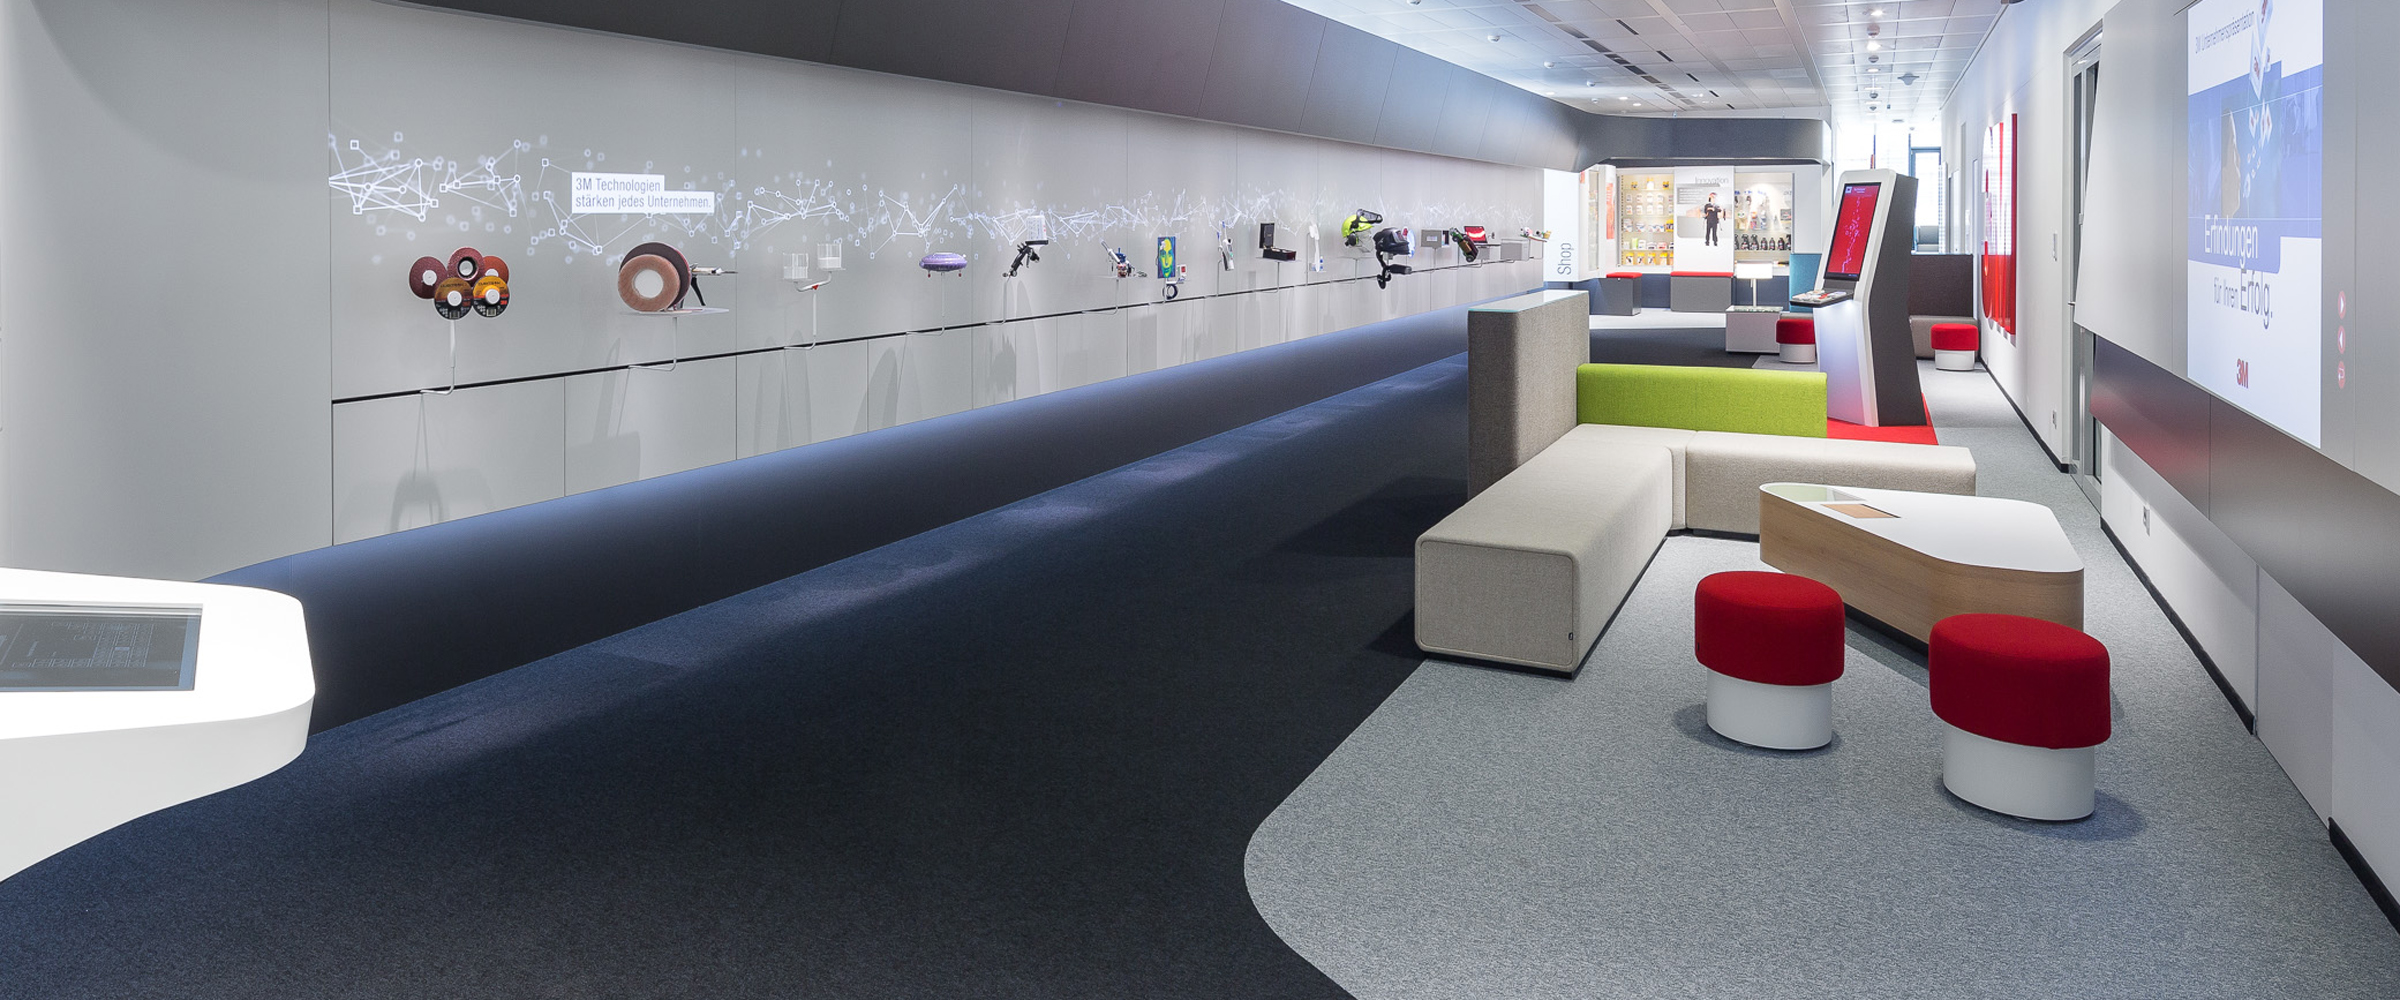 Interactive 14 meter long product wall with seating across the street